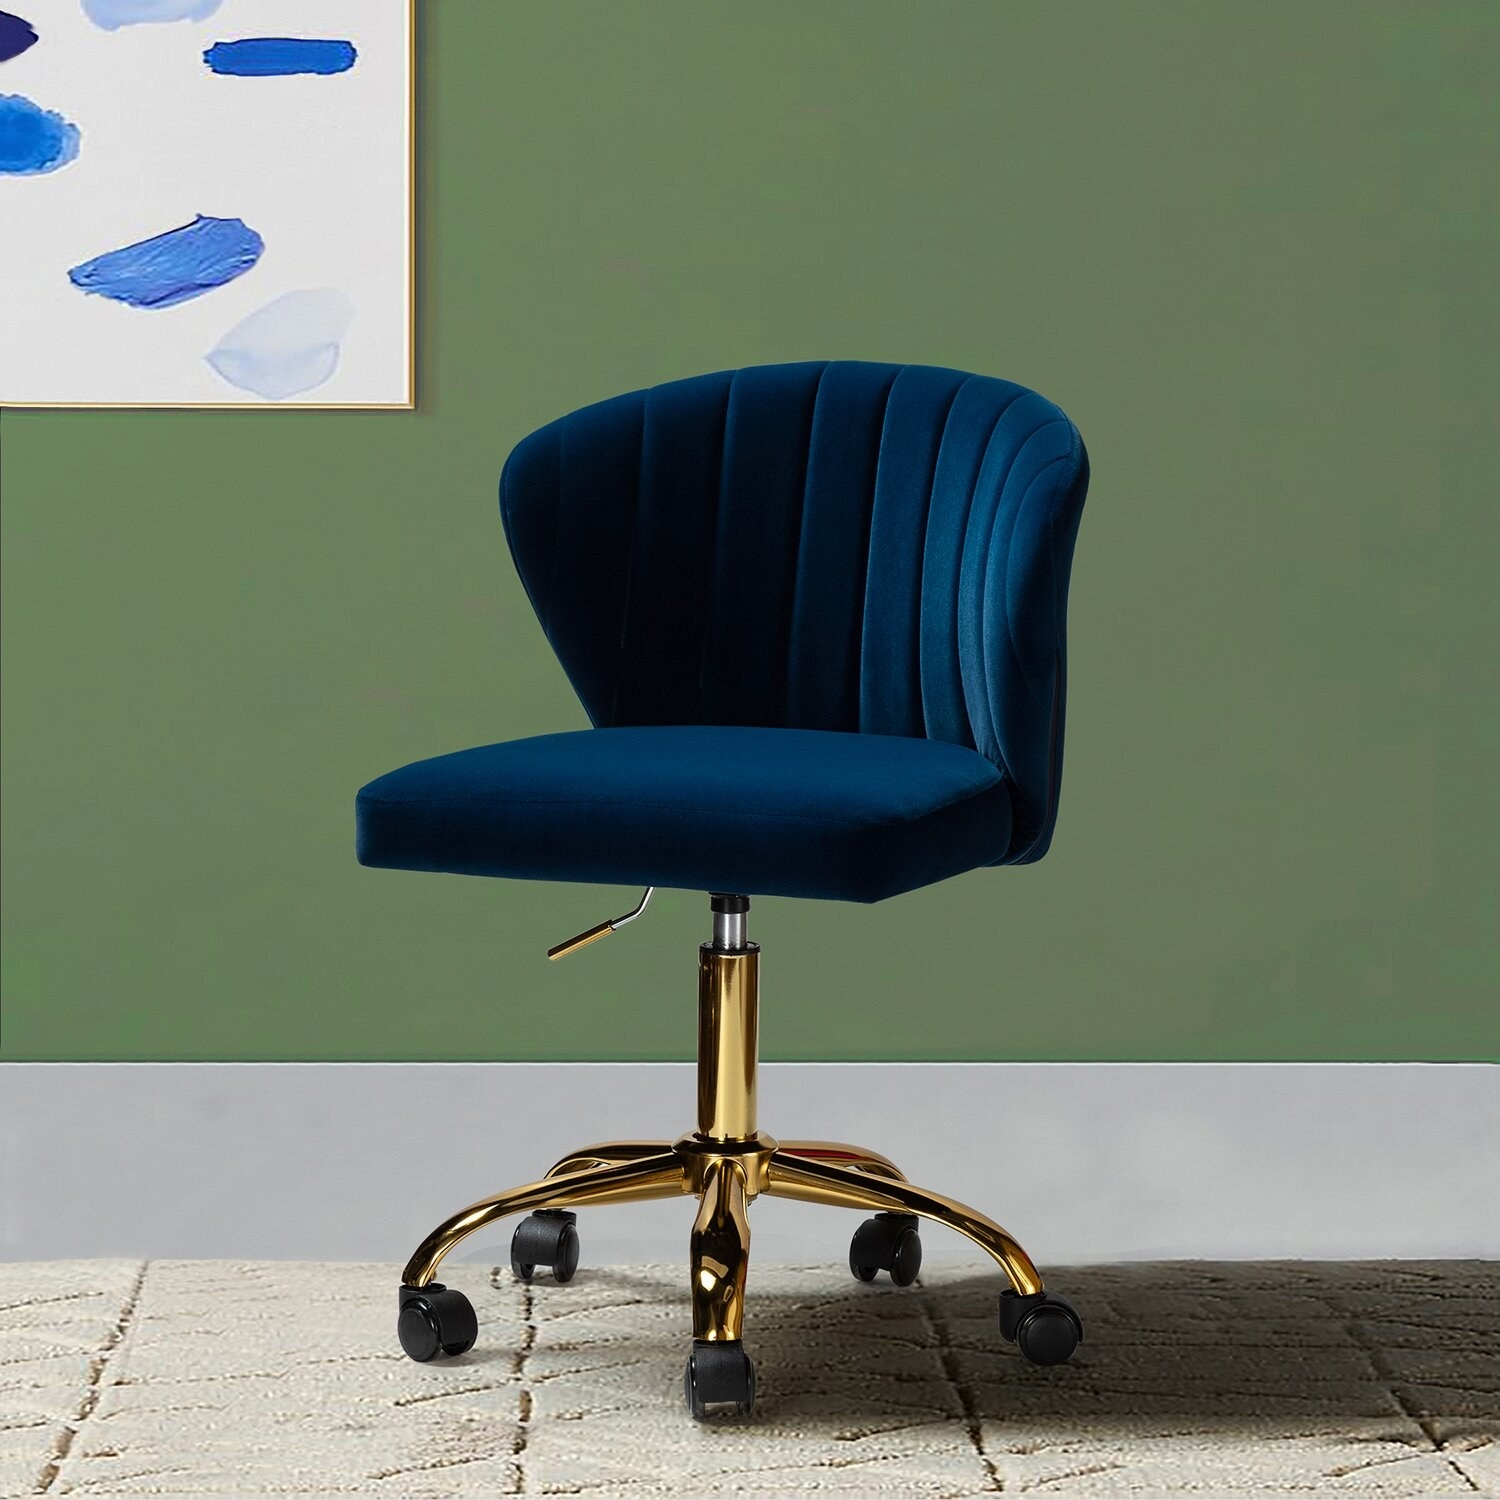 The chair in navy